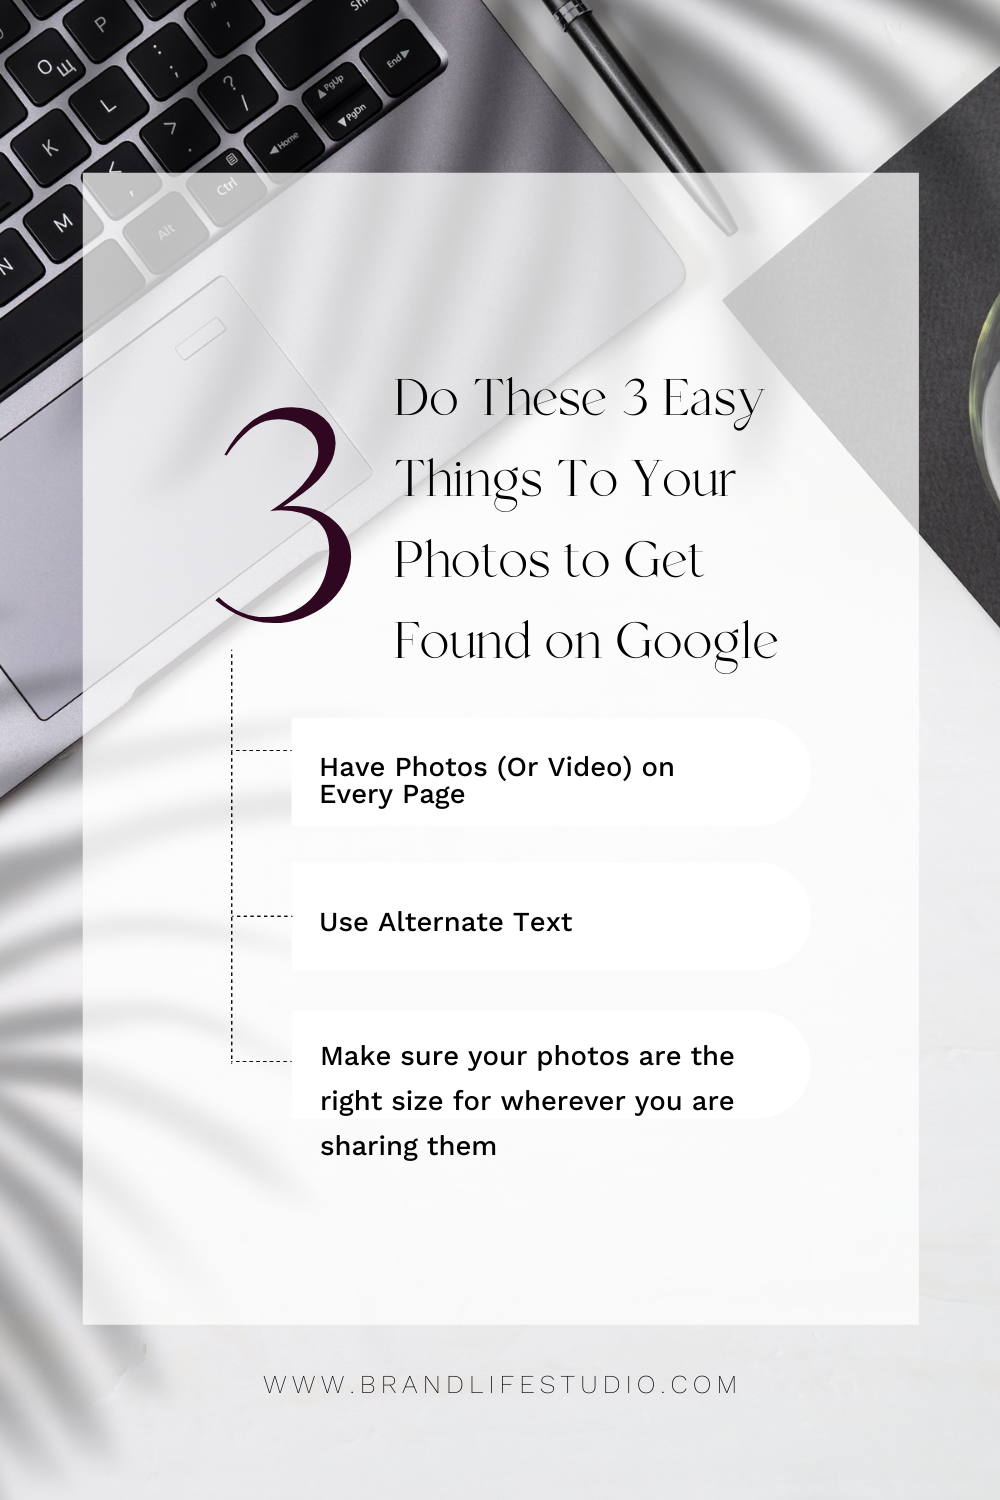 3 Easy Things to Do to your Photos to Get Found on Google